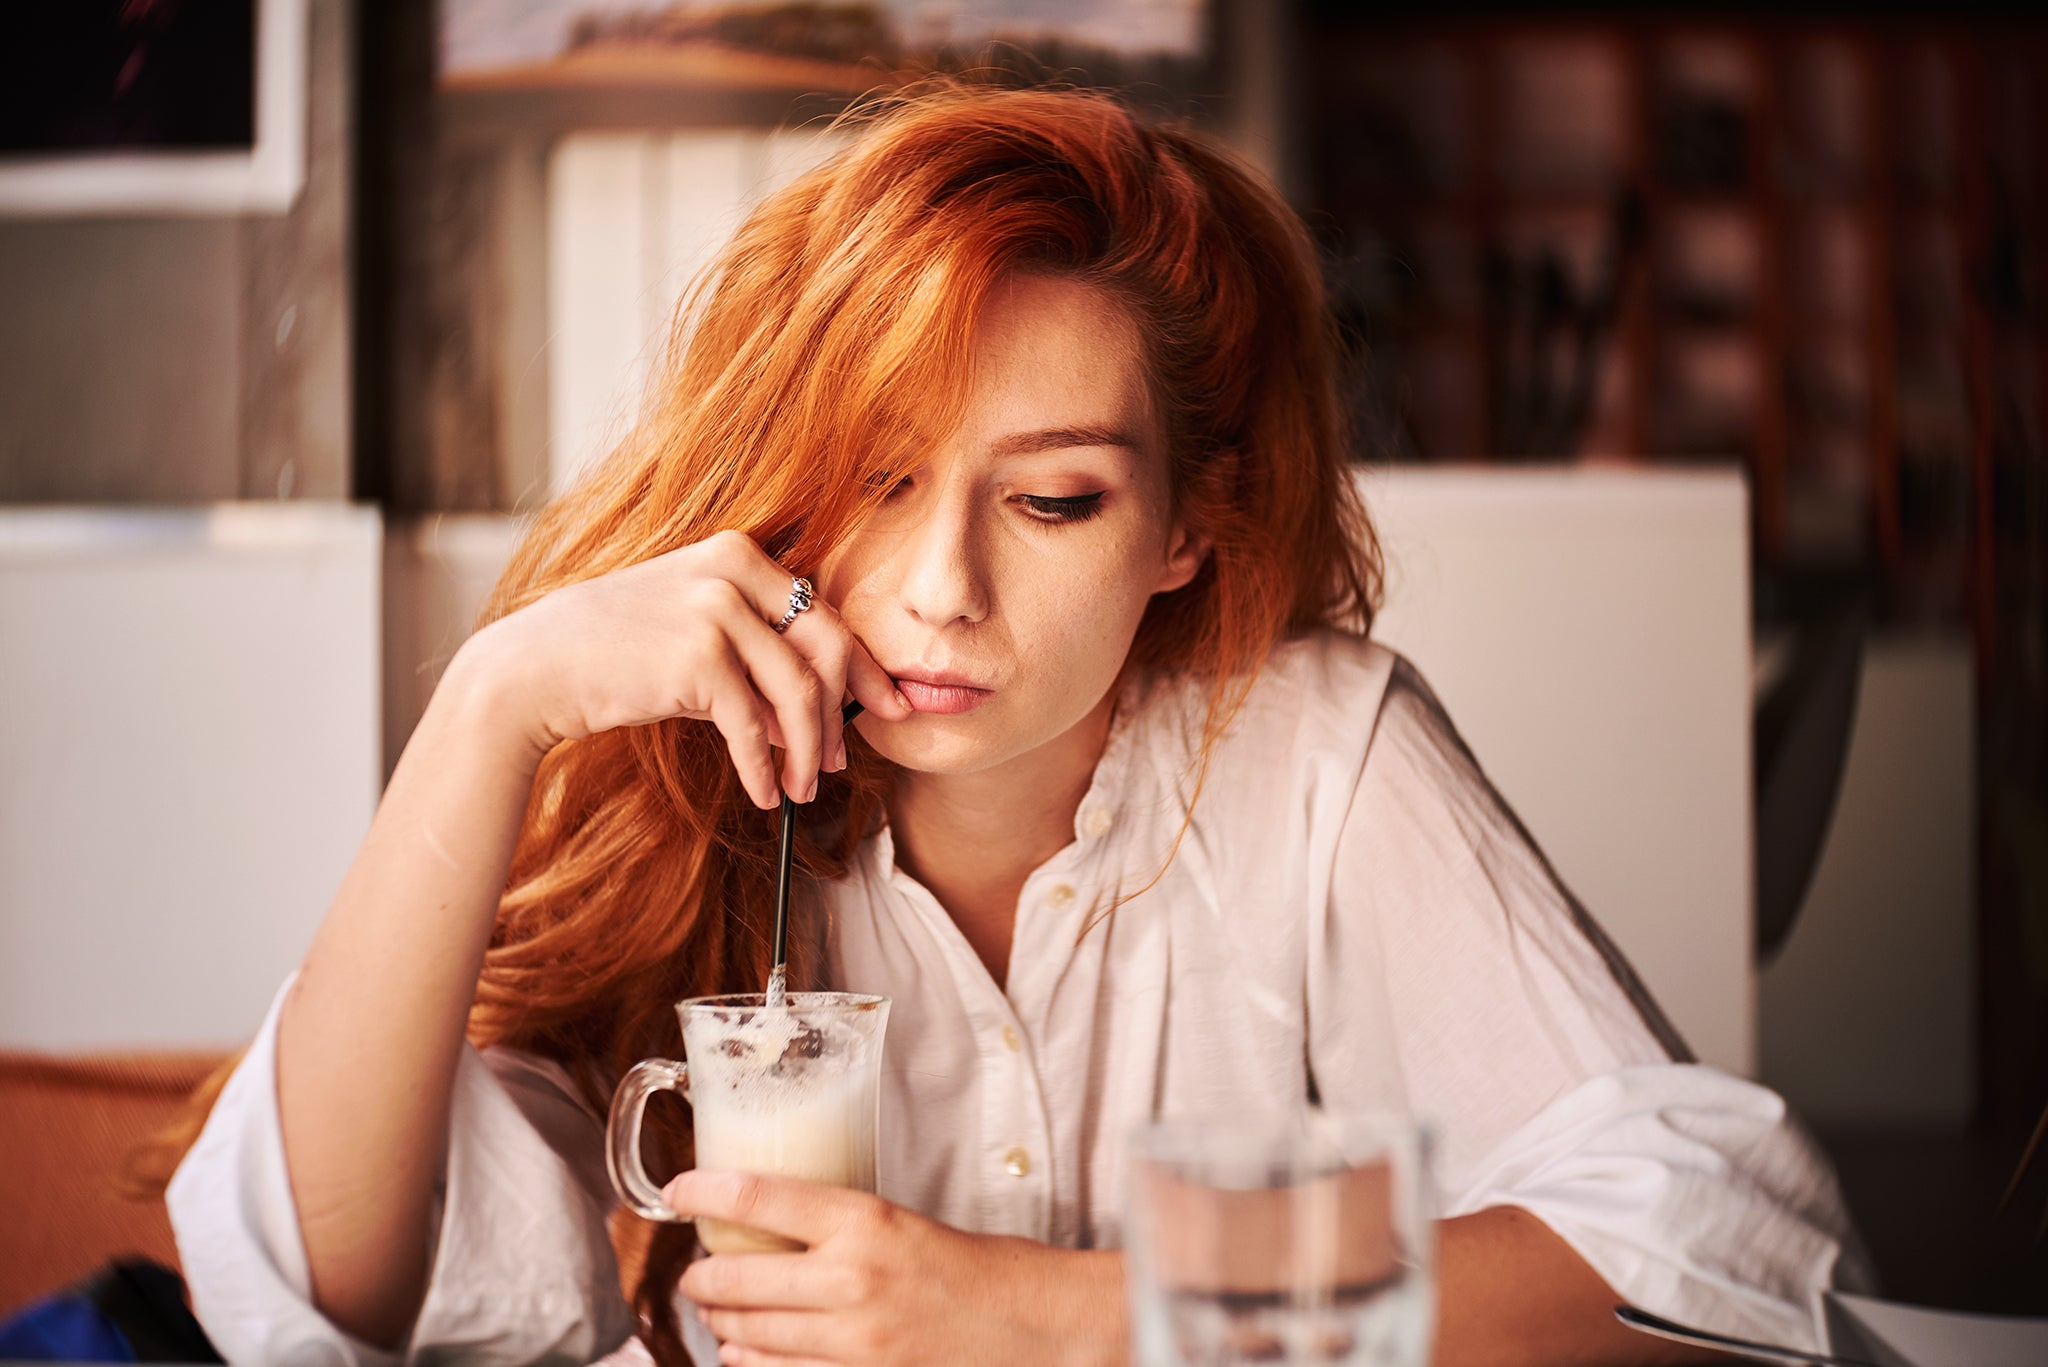 Woman with red hair drinking out of a straw at a diner